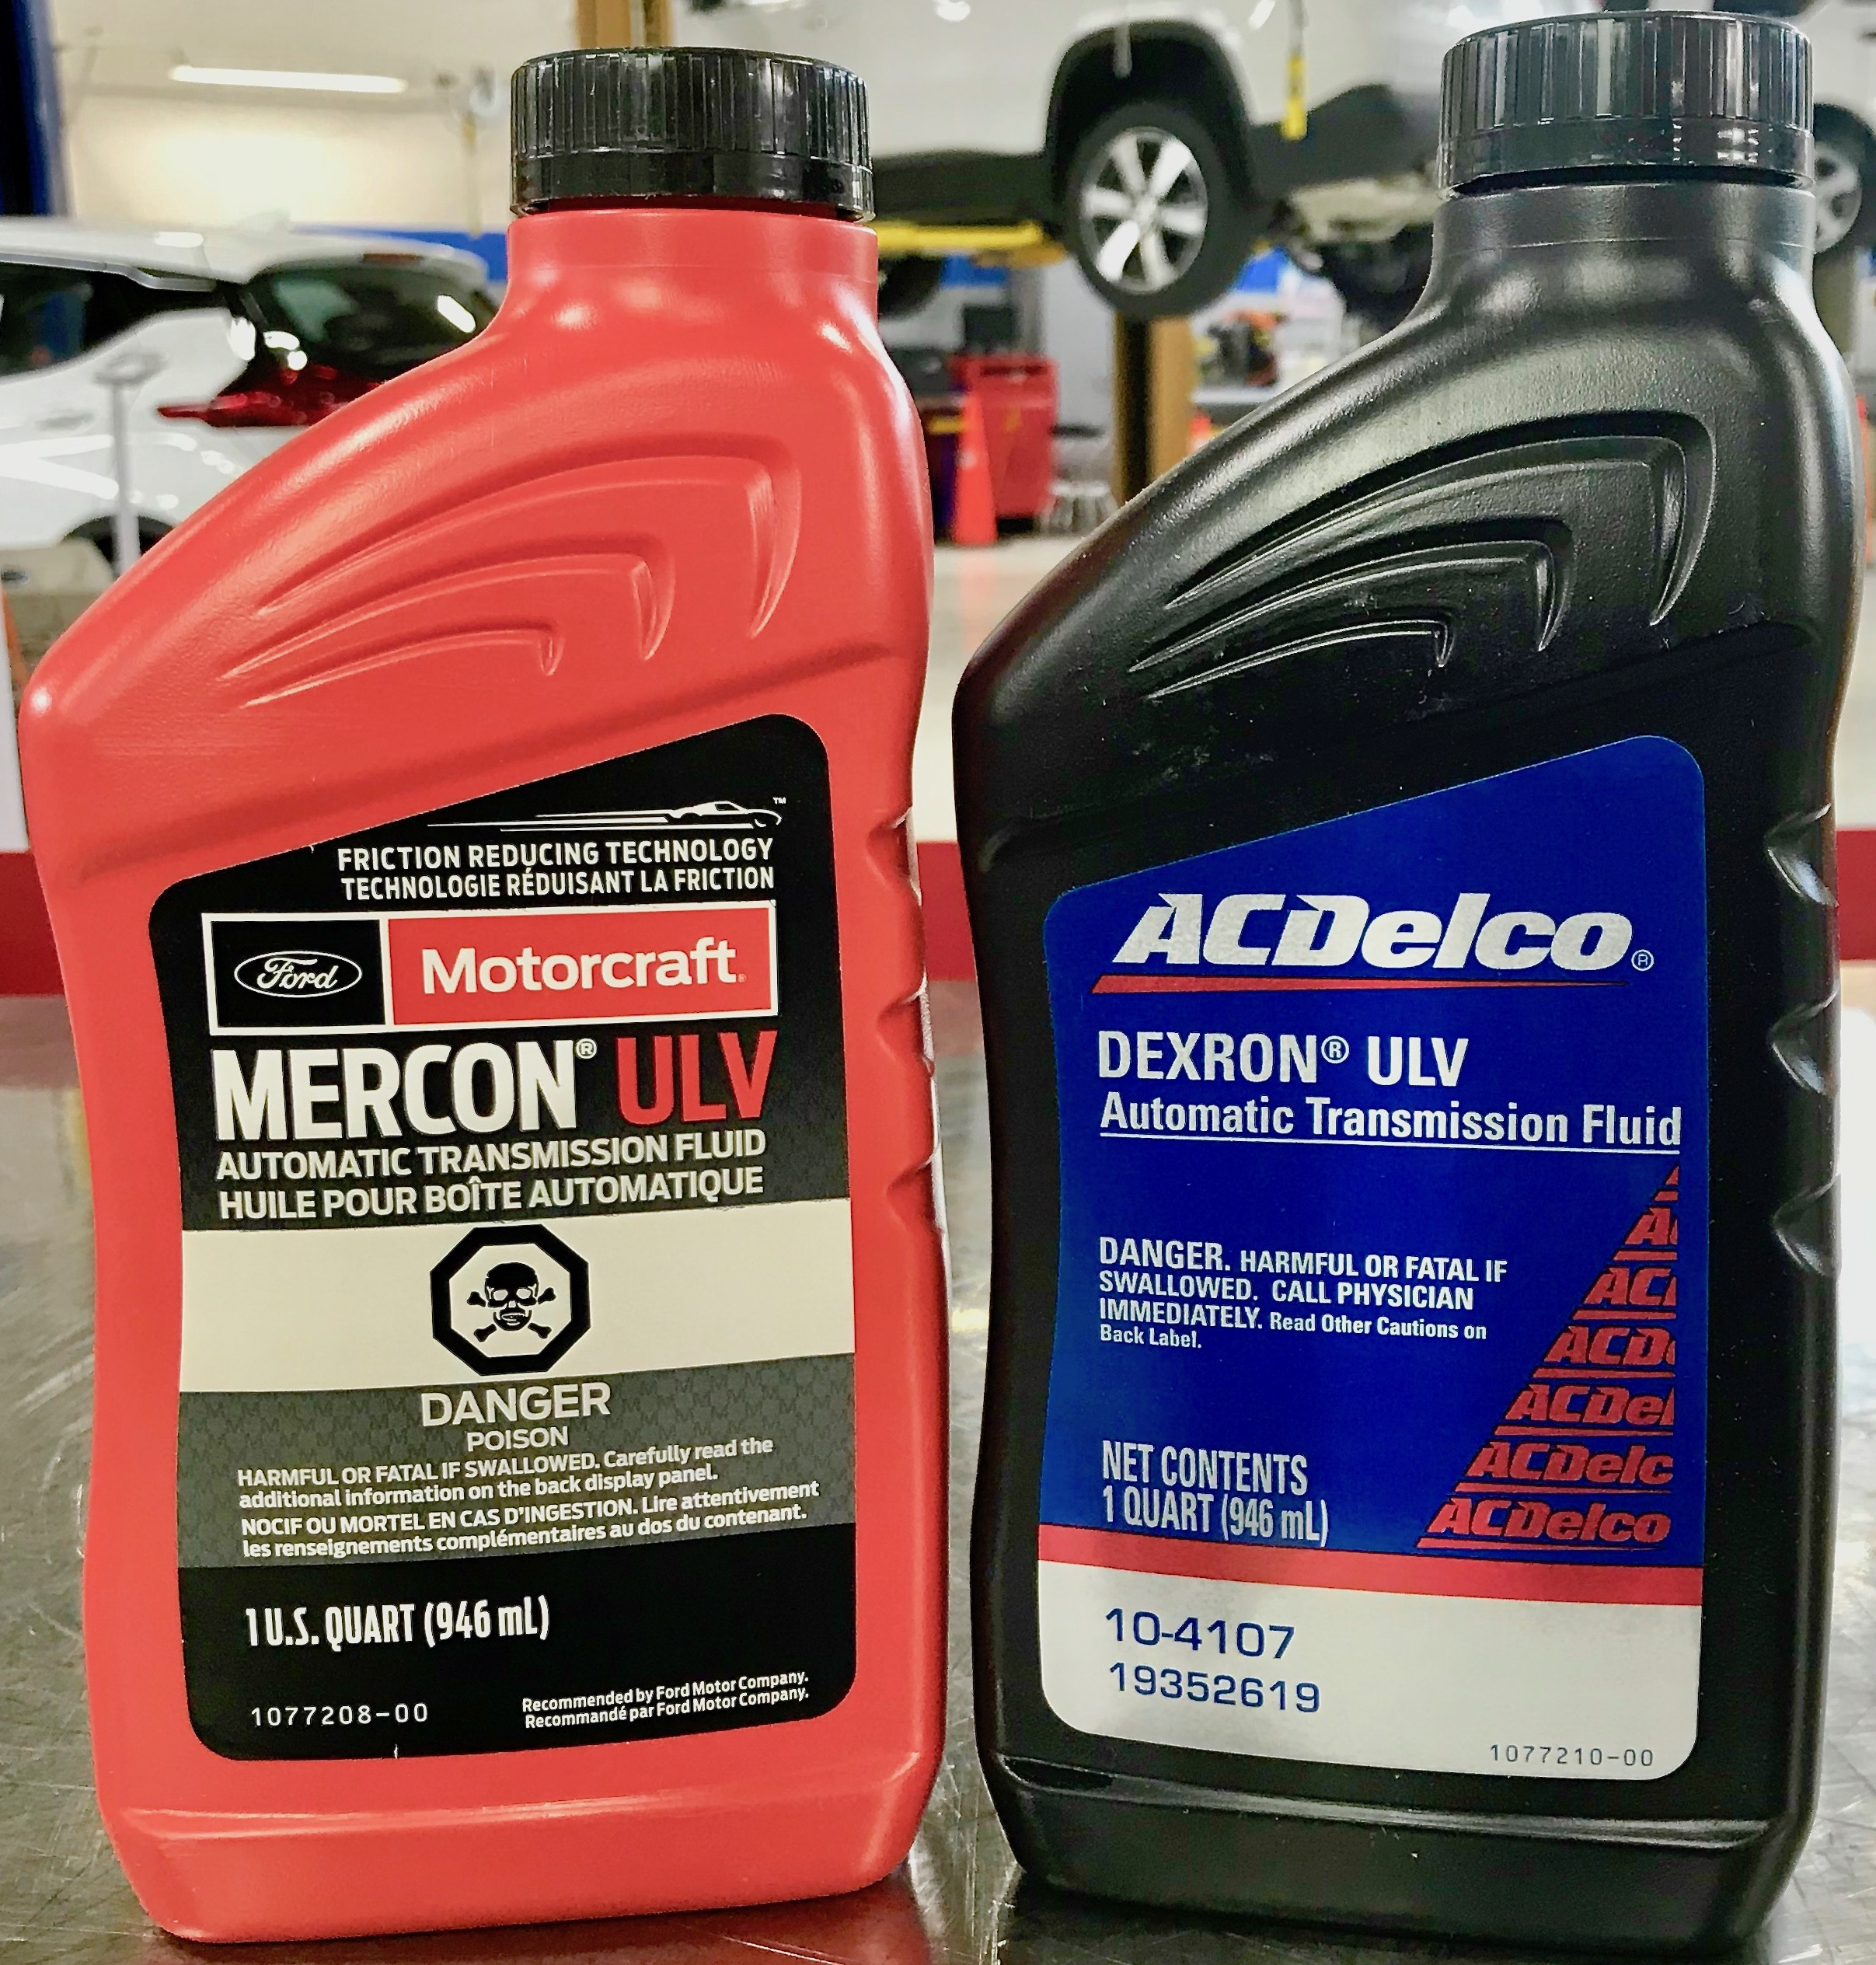 Mercon And Dexron ULV Fluids, My Transmission Experts